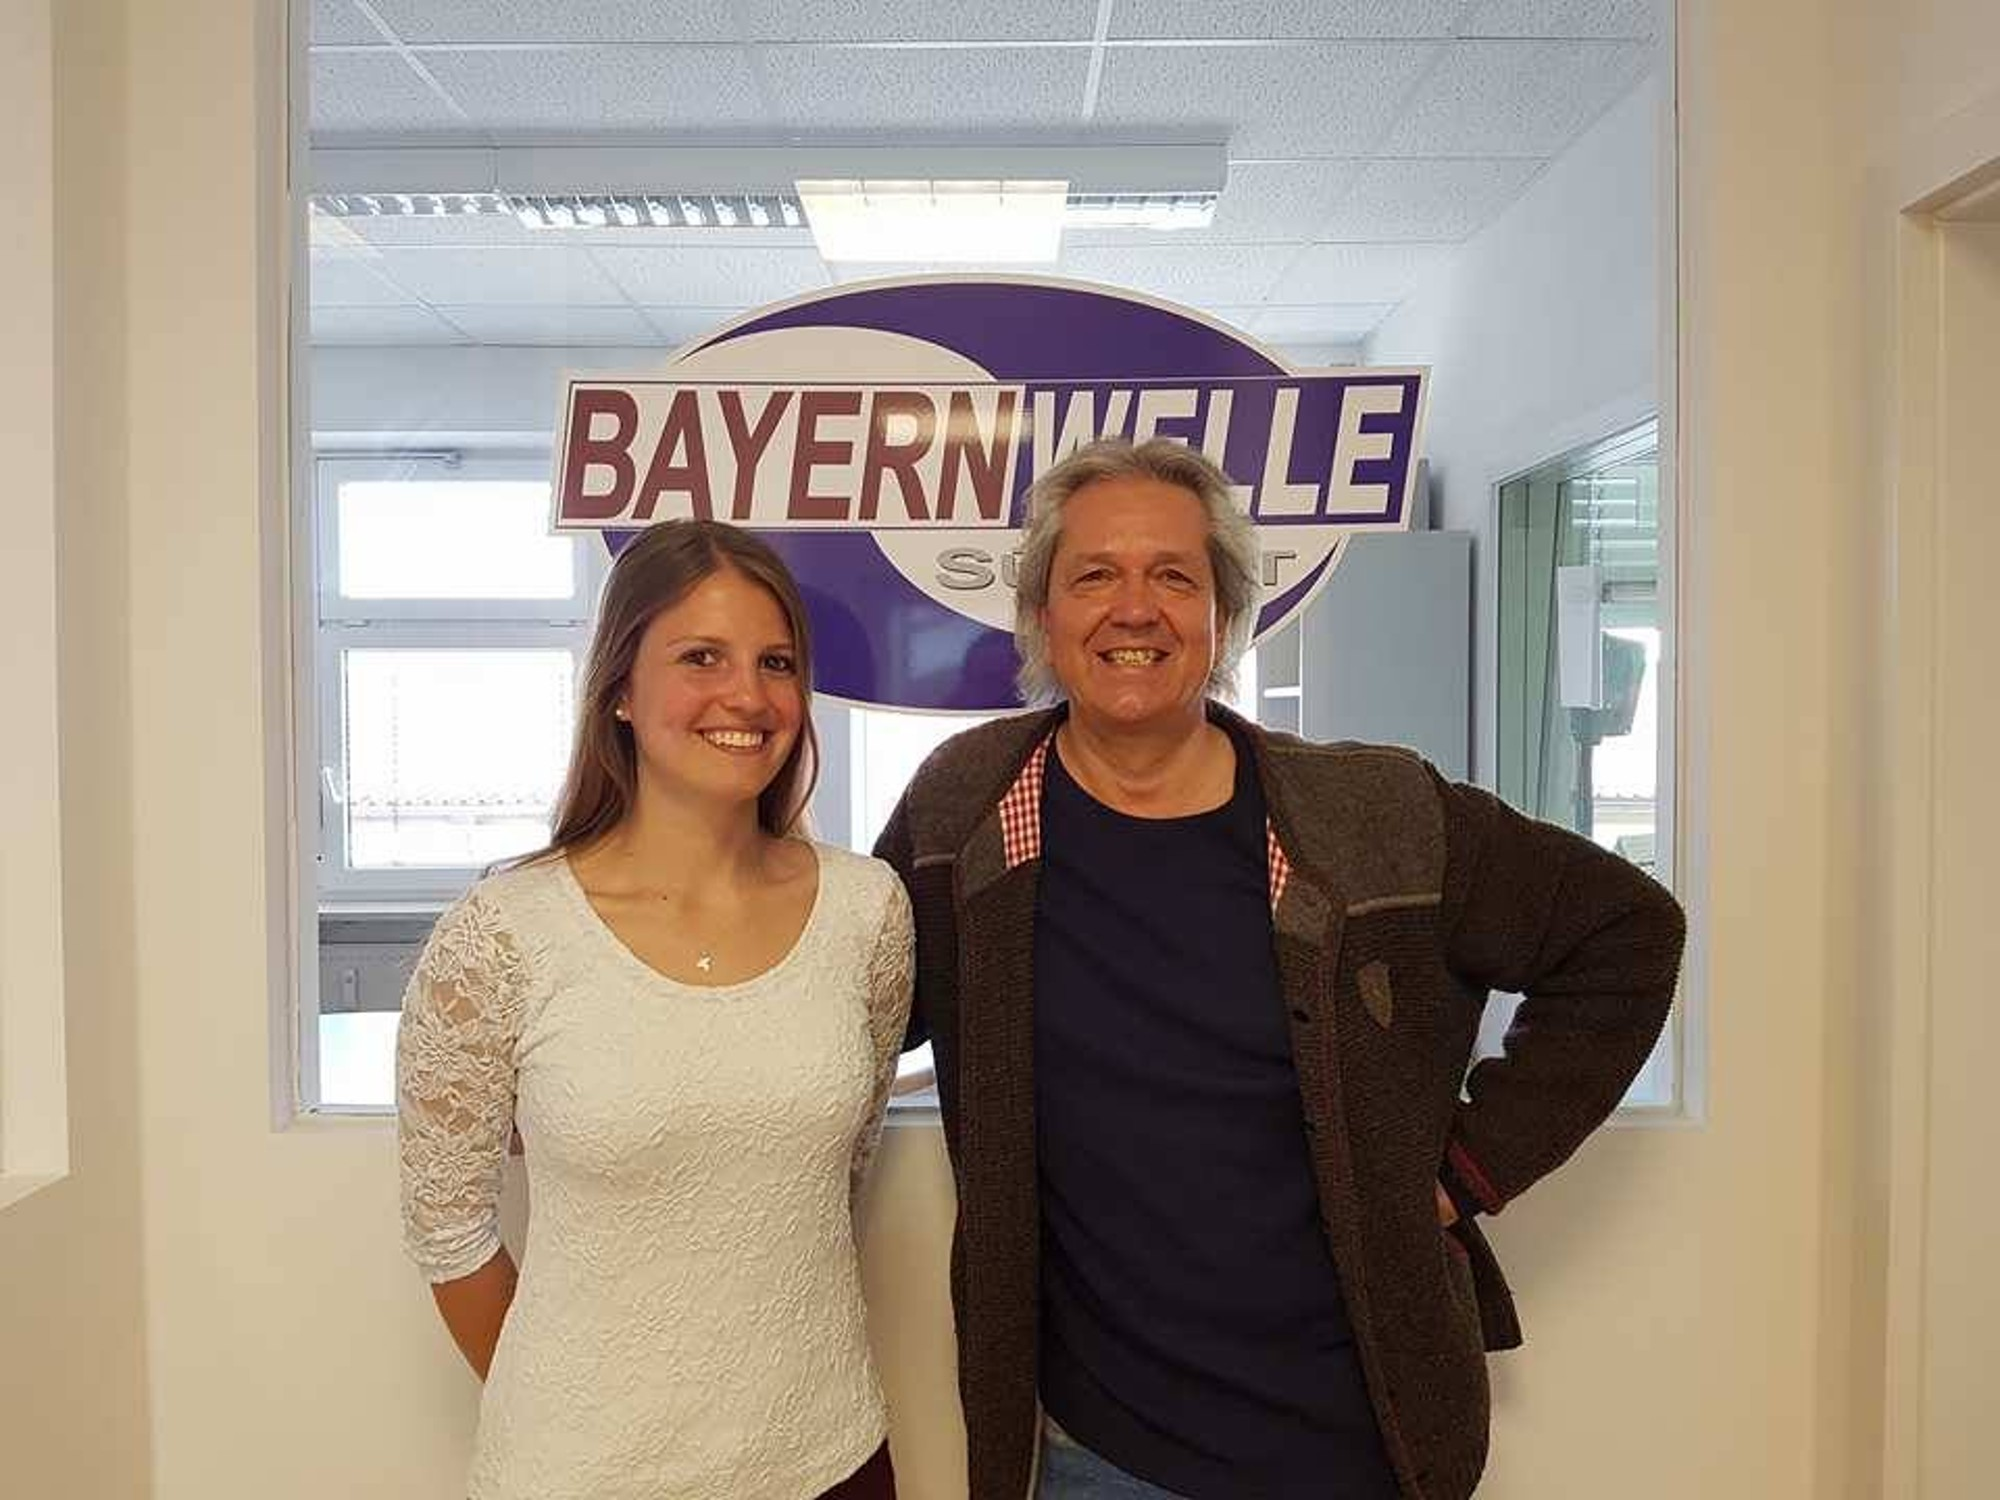 Interview Bayernwelle 1